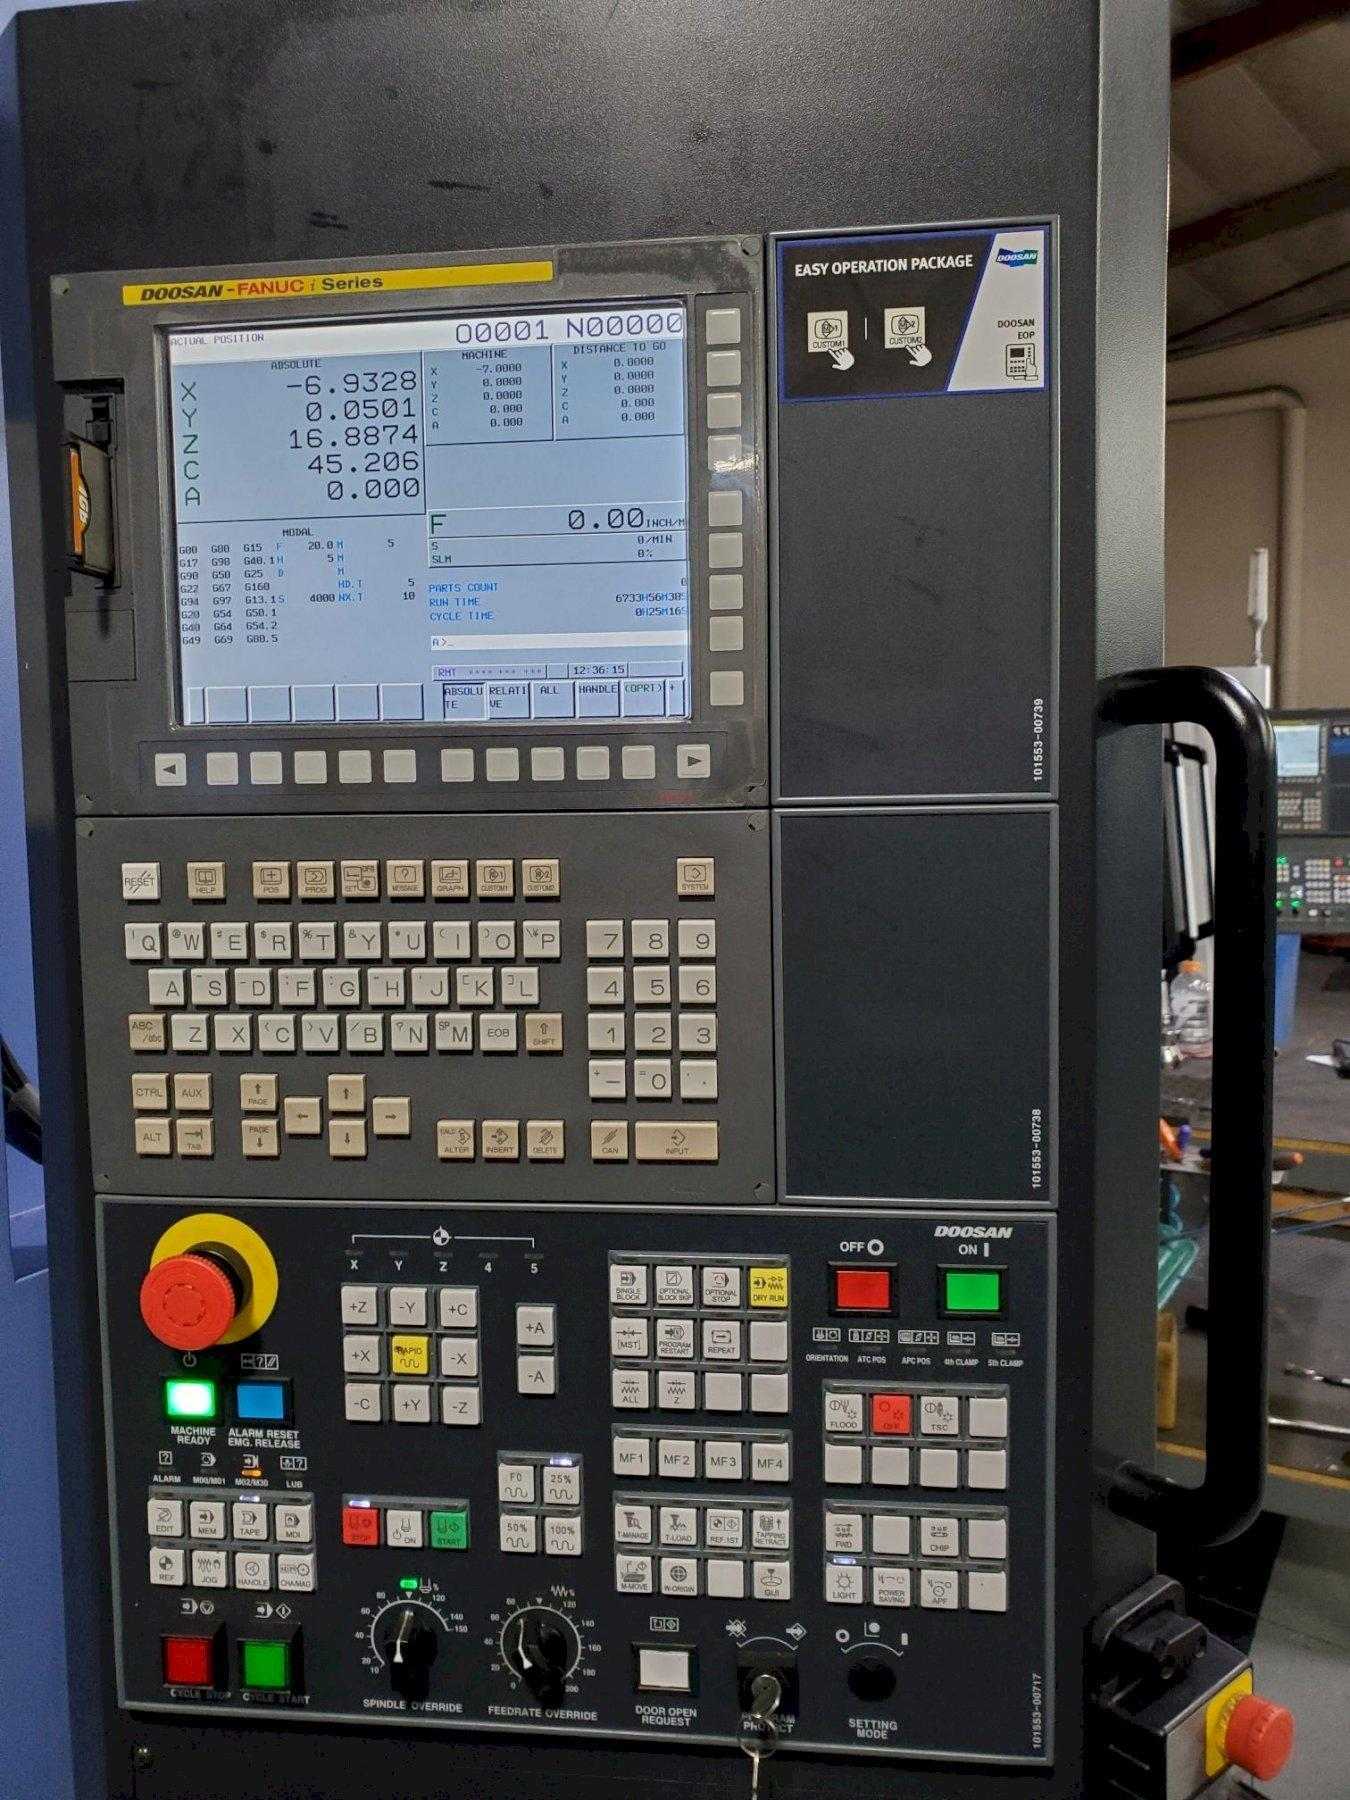 Doosan DNM 200-5AX: 5-Axis VMC 2017 with: Fanuc Oi-MD CNC Control, Renishaw Probing System, 200 Block Look Ahead, Rigid Tapping, Spindle Chiller, and LNS Chip Conveyor.